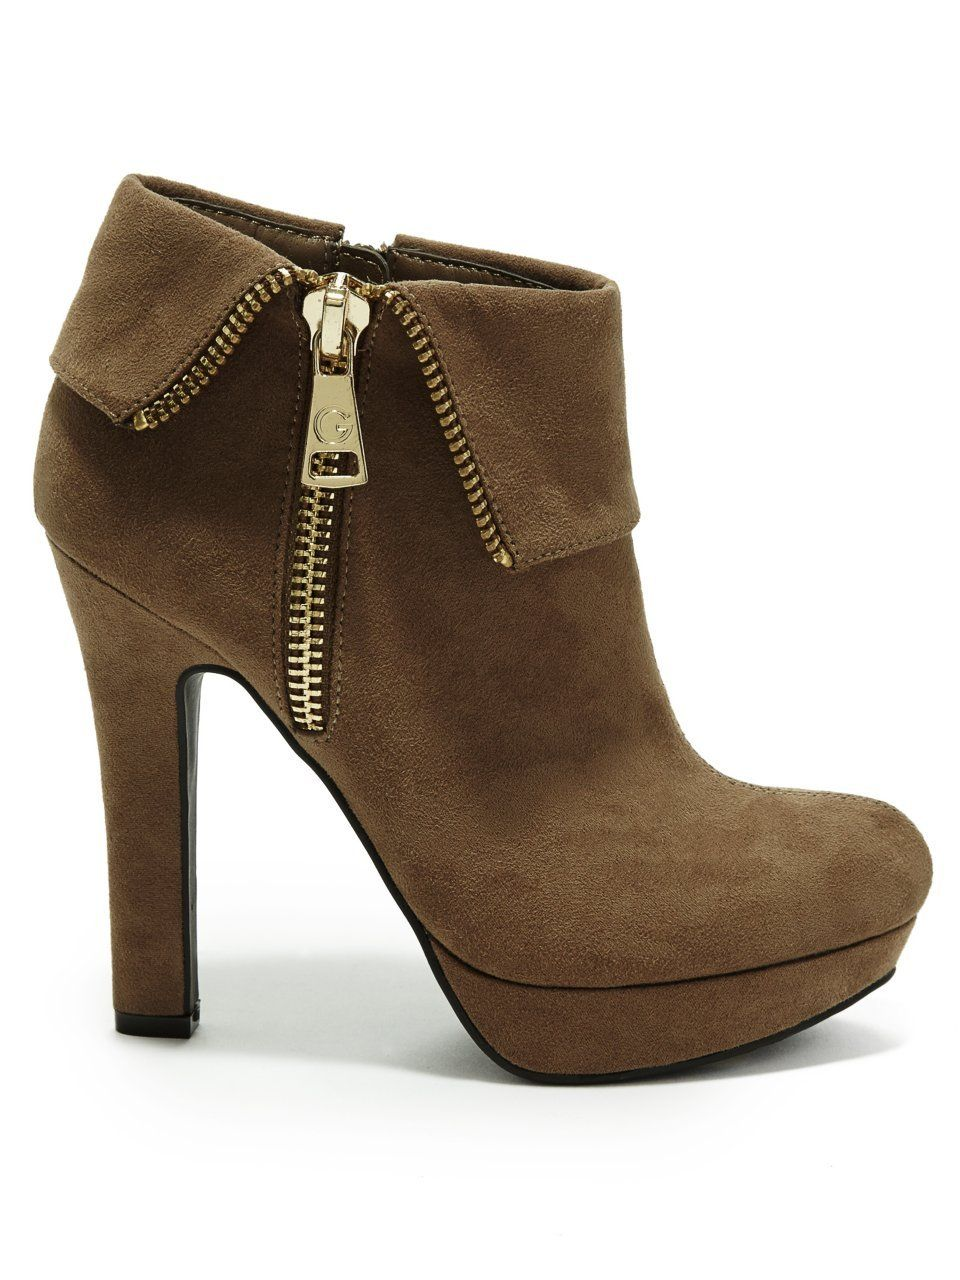 Amazon.com: G By Guess Women Rocket Booties: G by Guess: Shoes